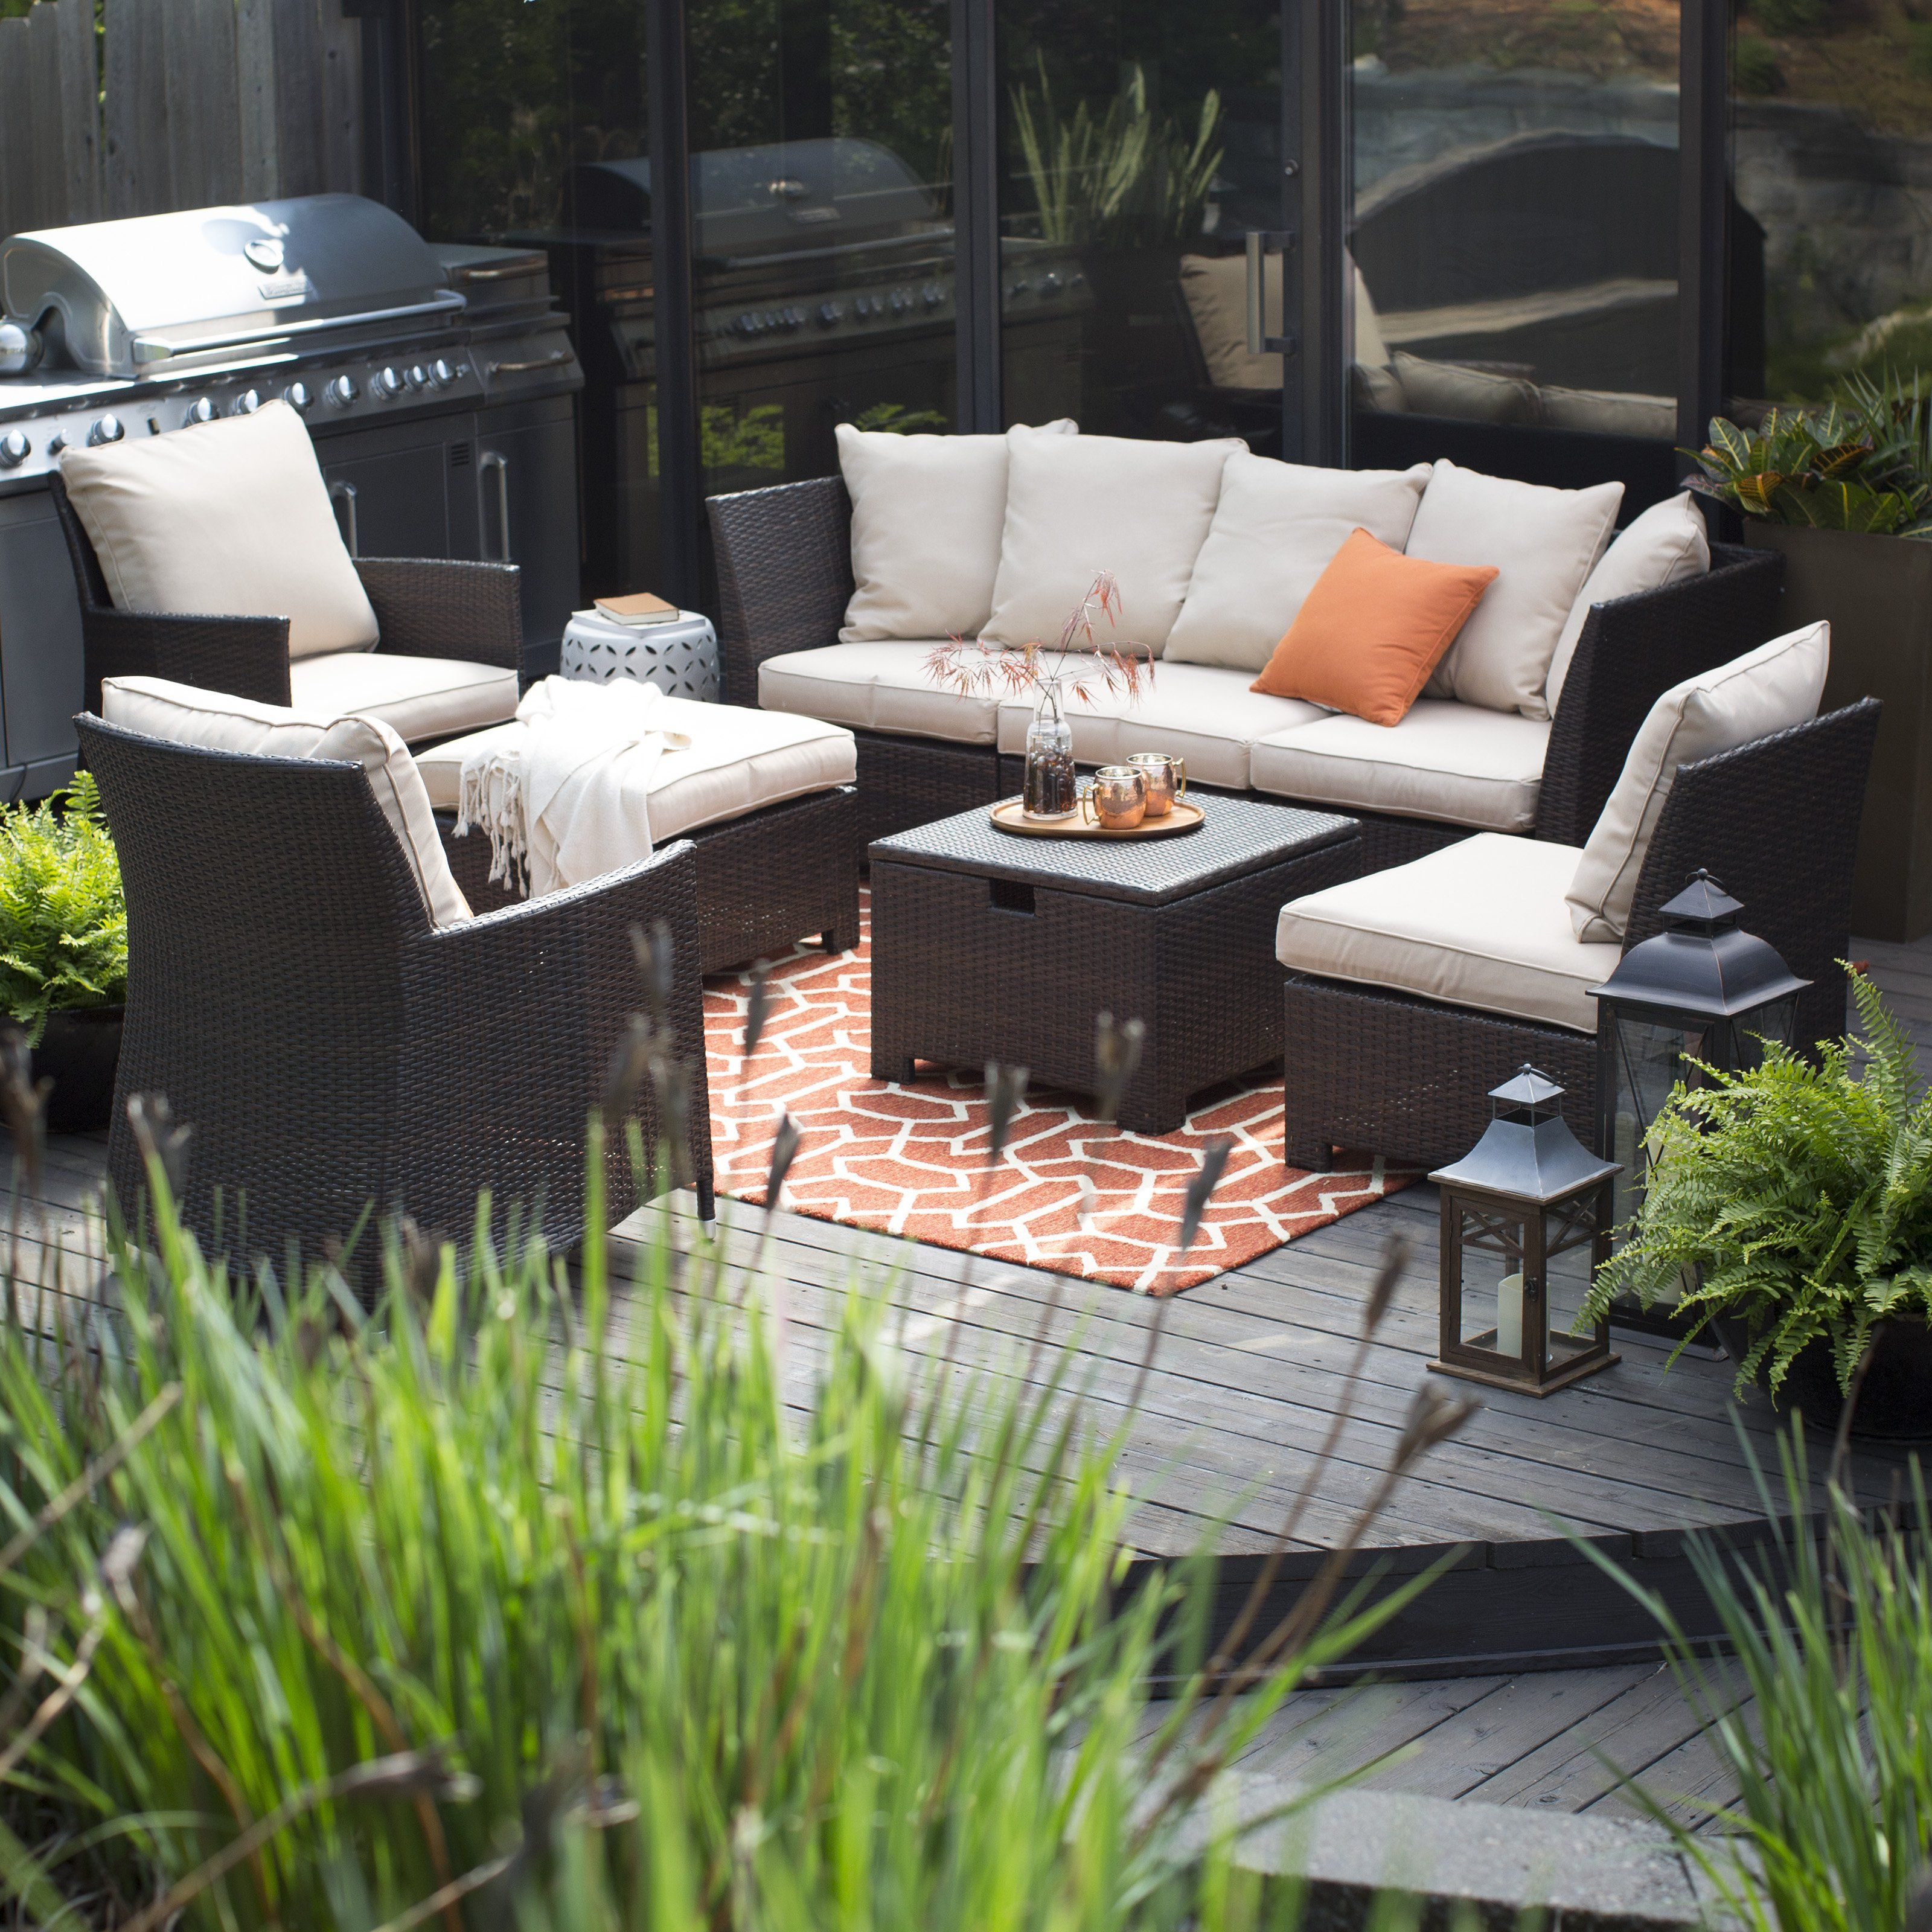 Coral coast south isle all weather wicker 8 piece patio conversation set from hayneedle com